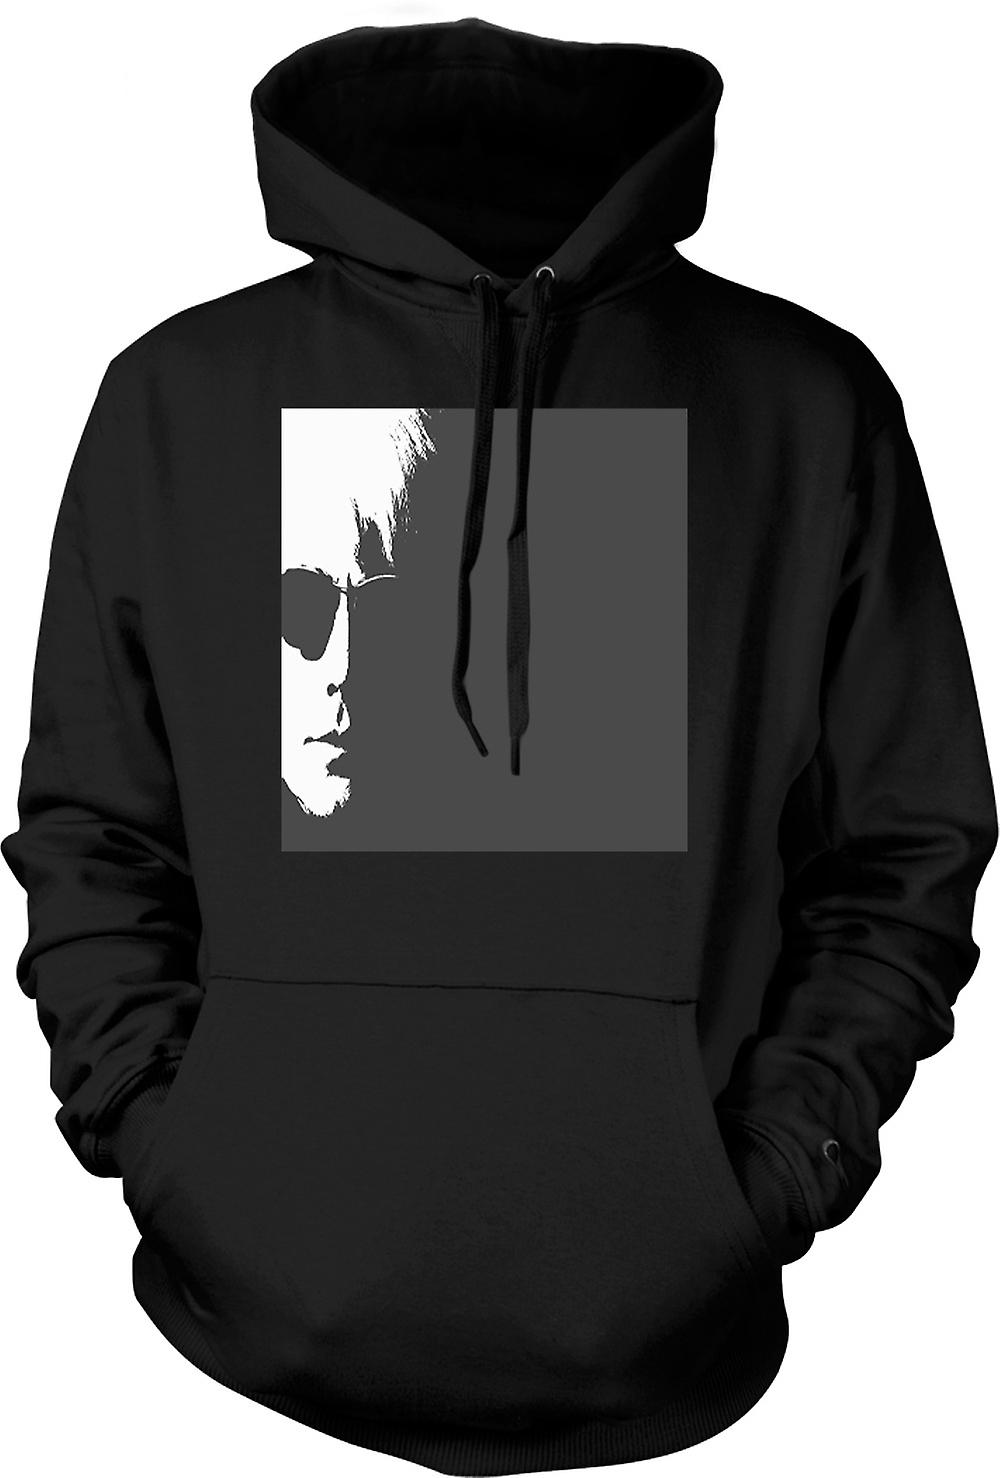 Mens Hoodie - Andy Warhol - Pop Art